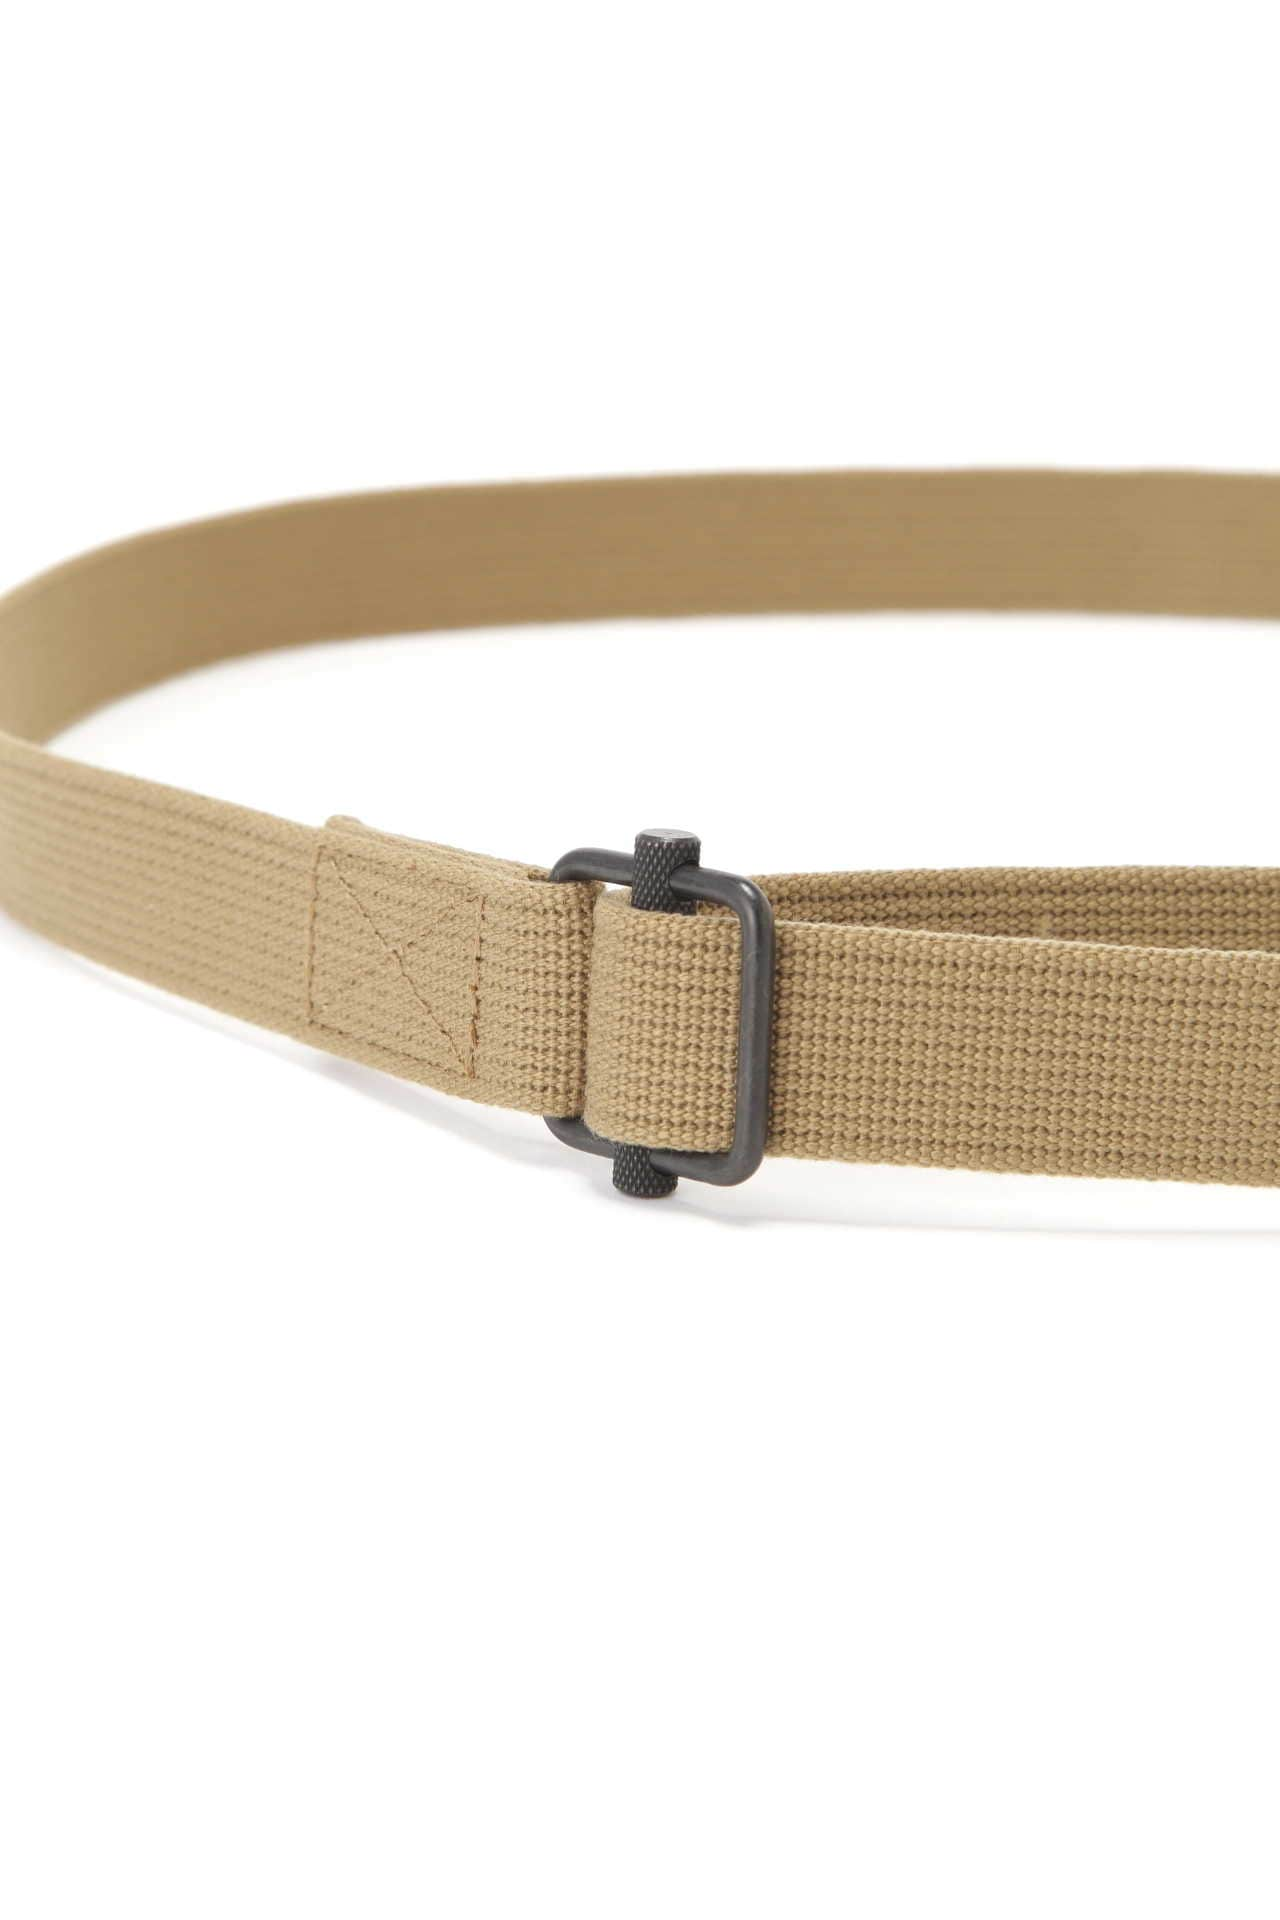 NARROW MILITARY BELT3